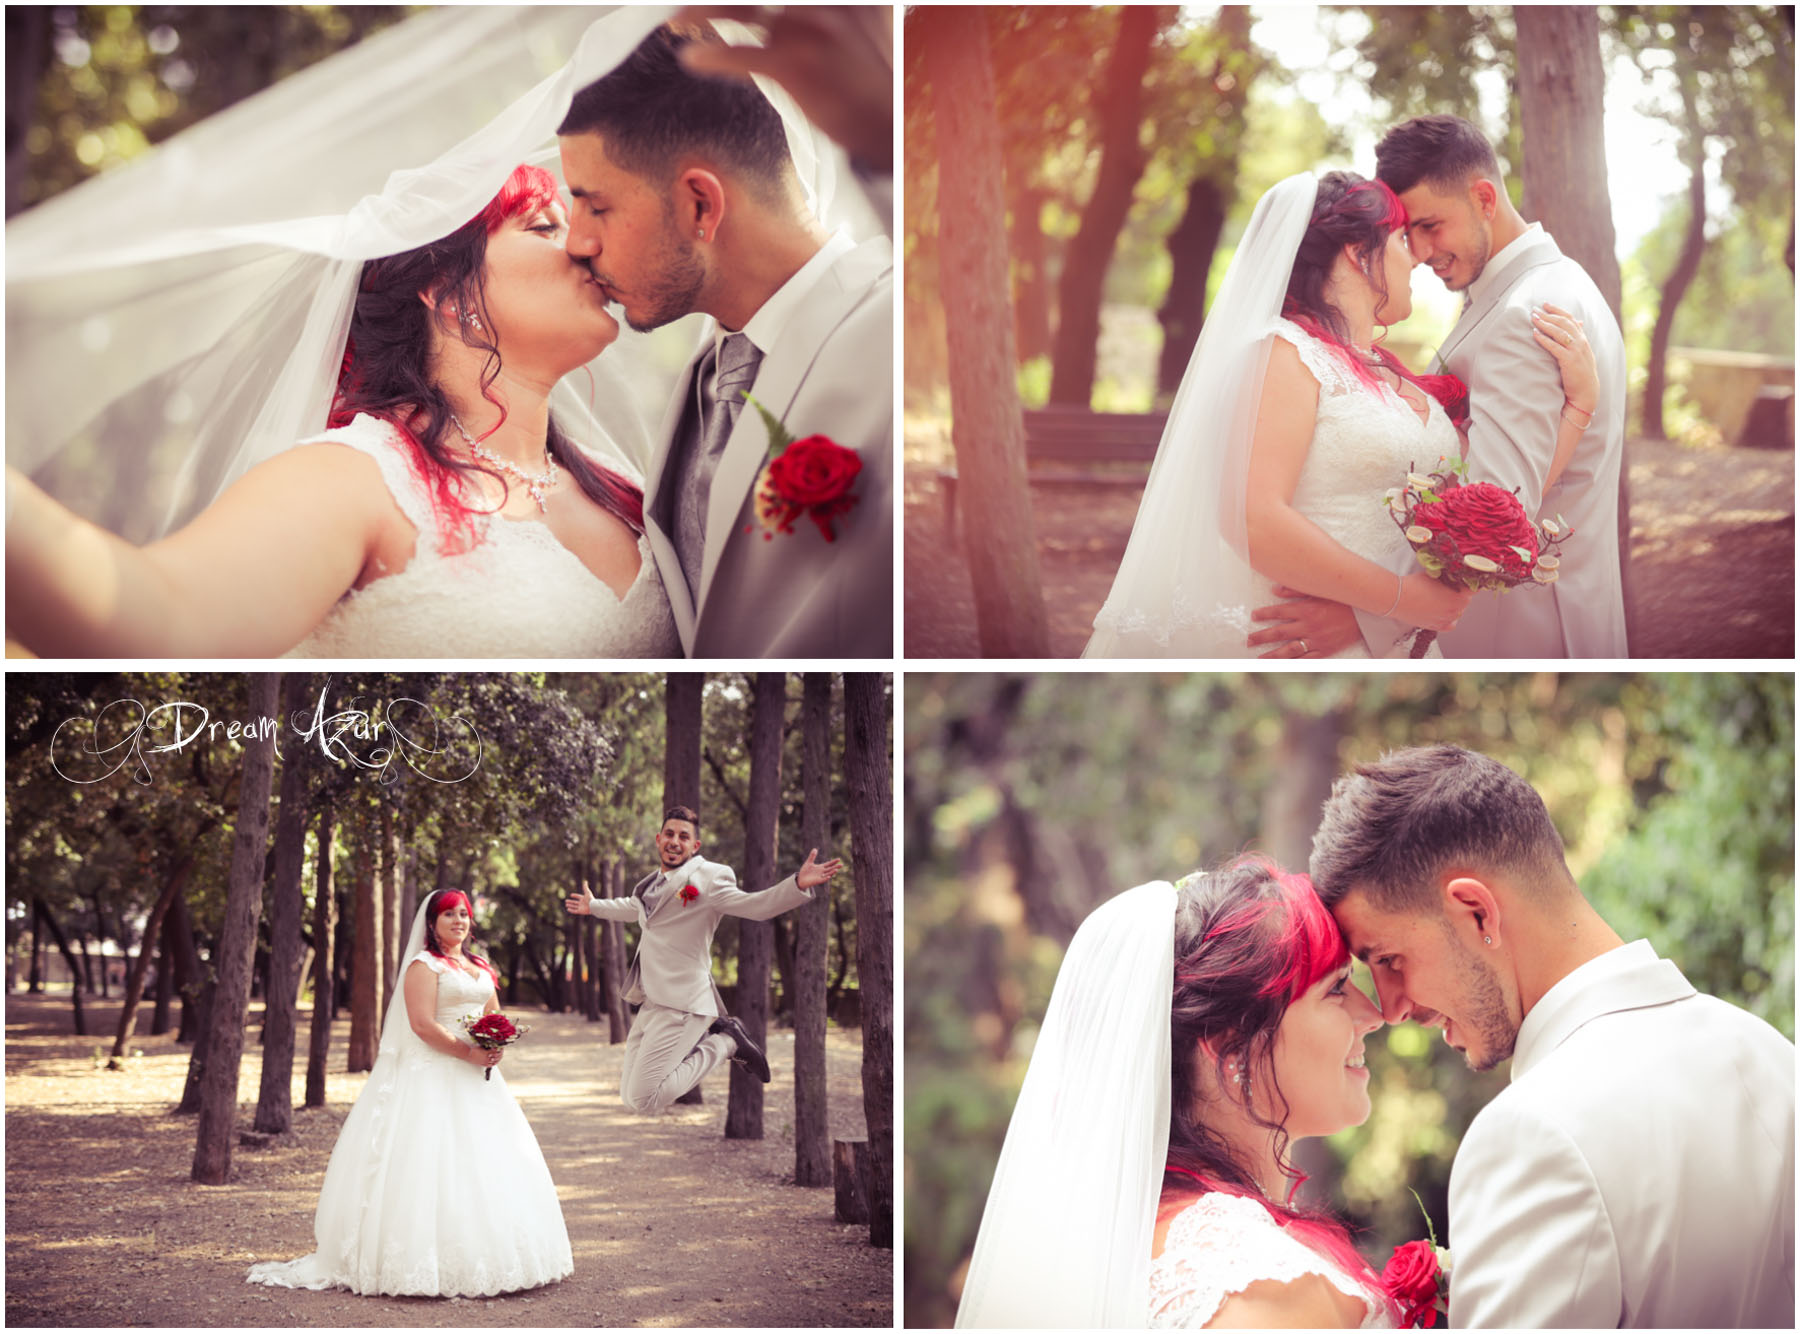 190824COMPO-Mariage-Cindy-et-Anthony-59